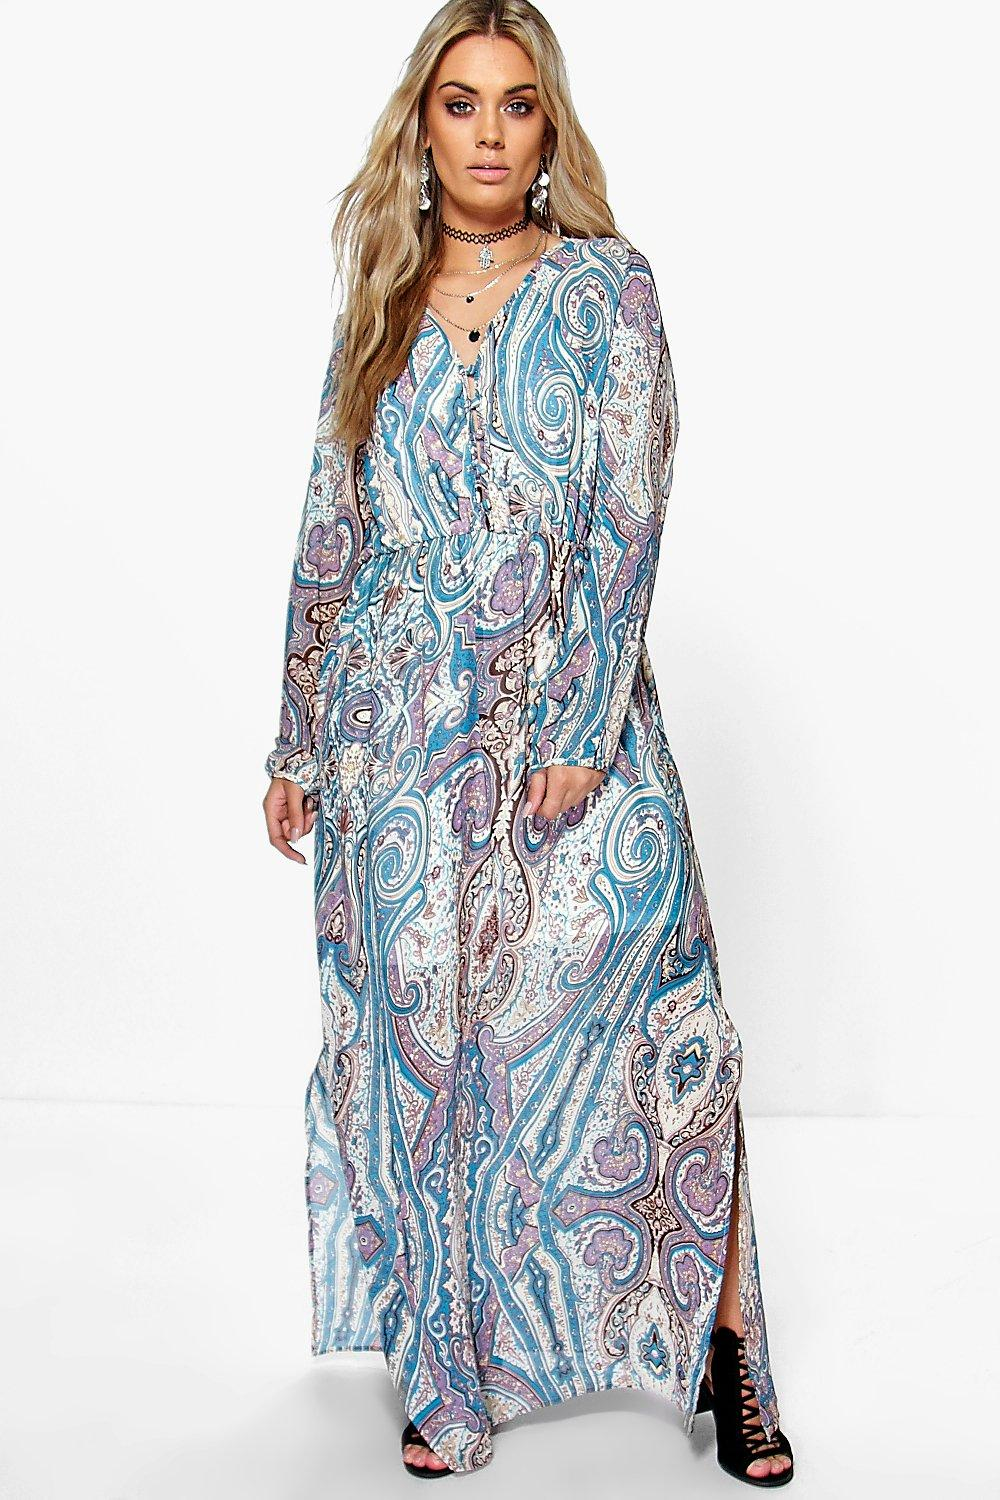 Boohoo Plus Amy Paisley Cage Back Maxi Dress in Blue - Lyst